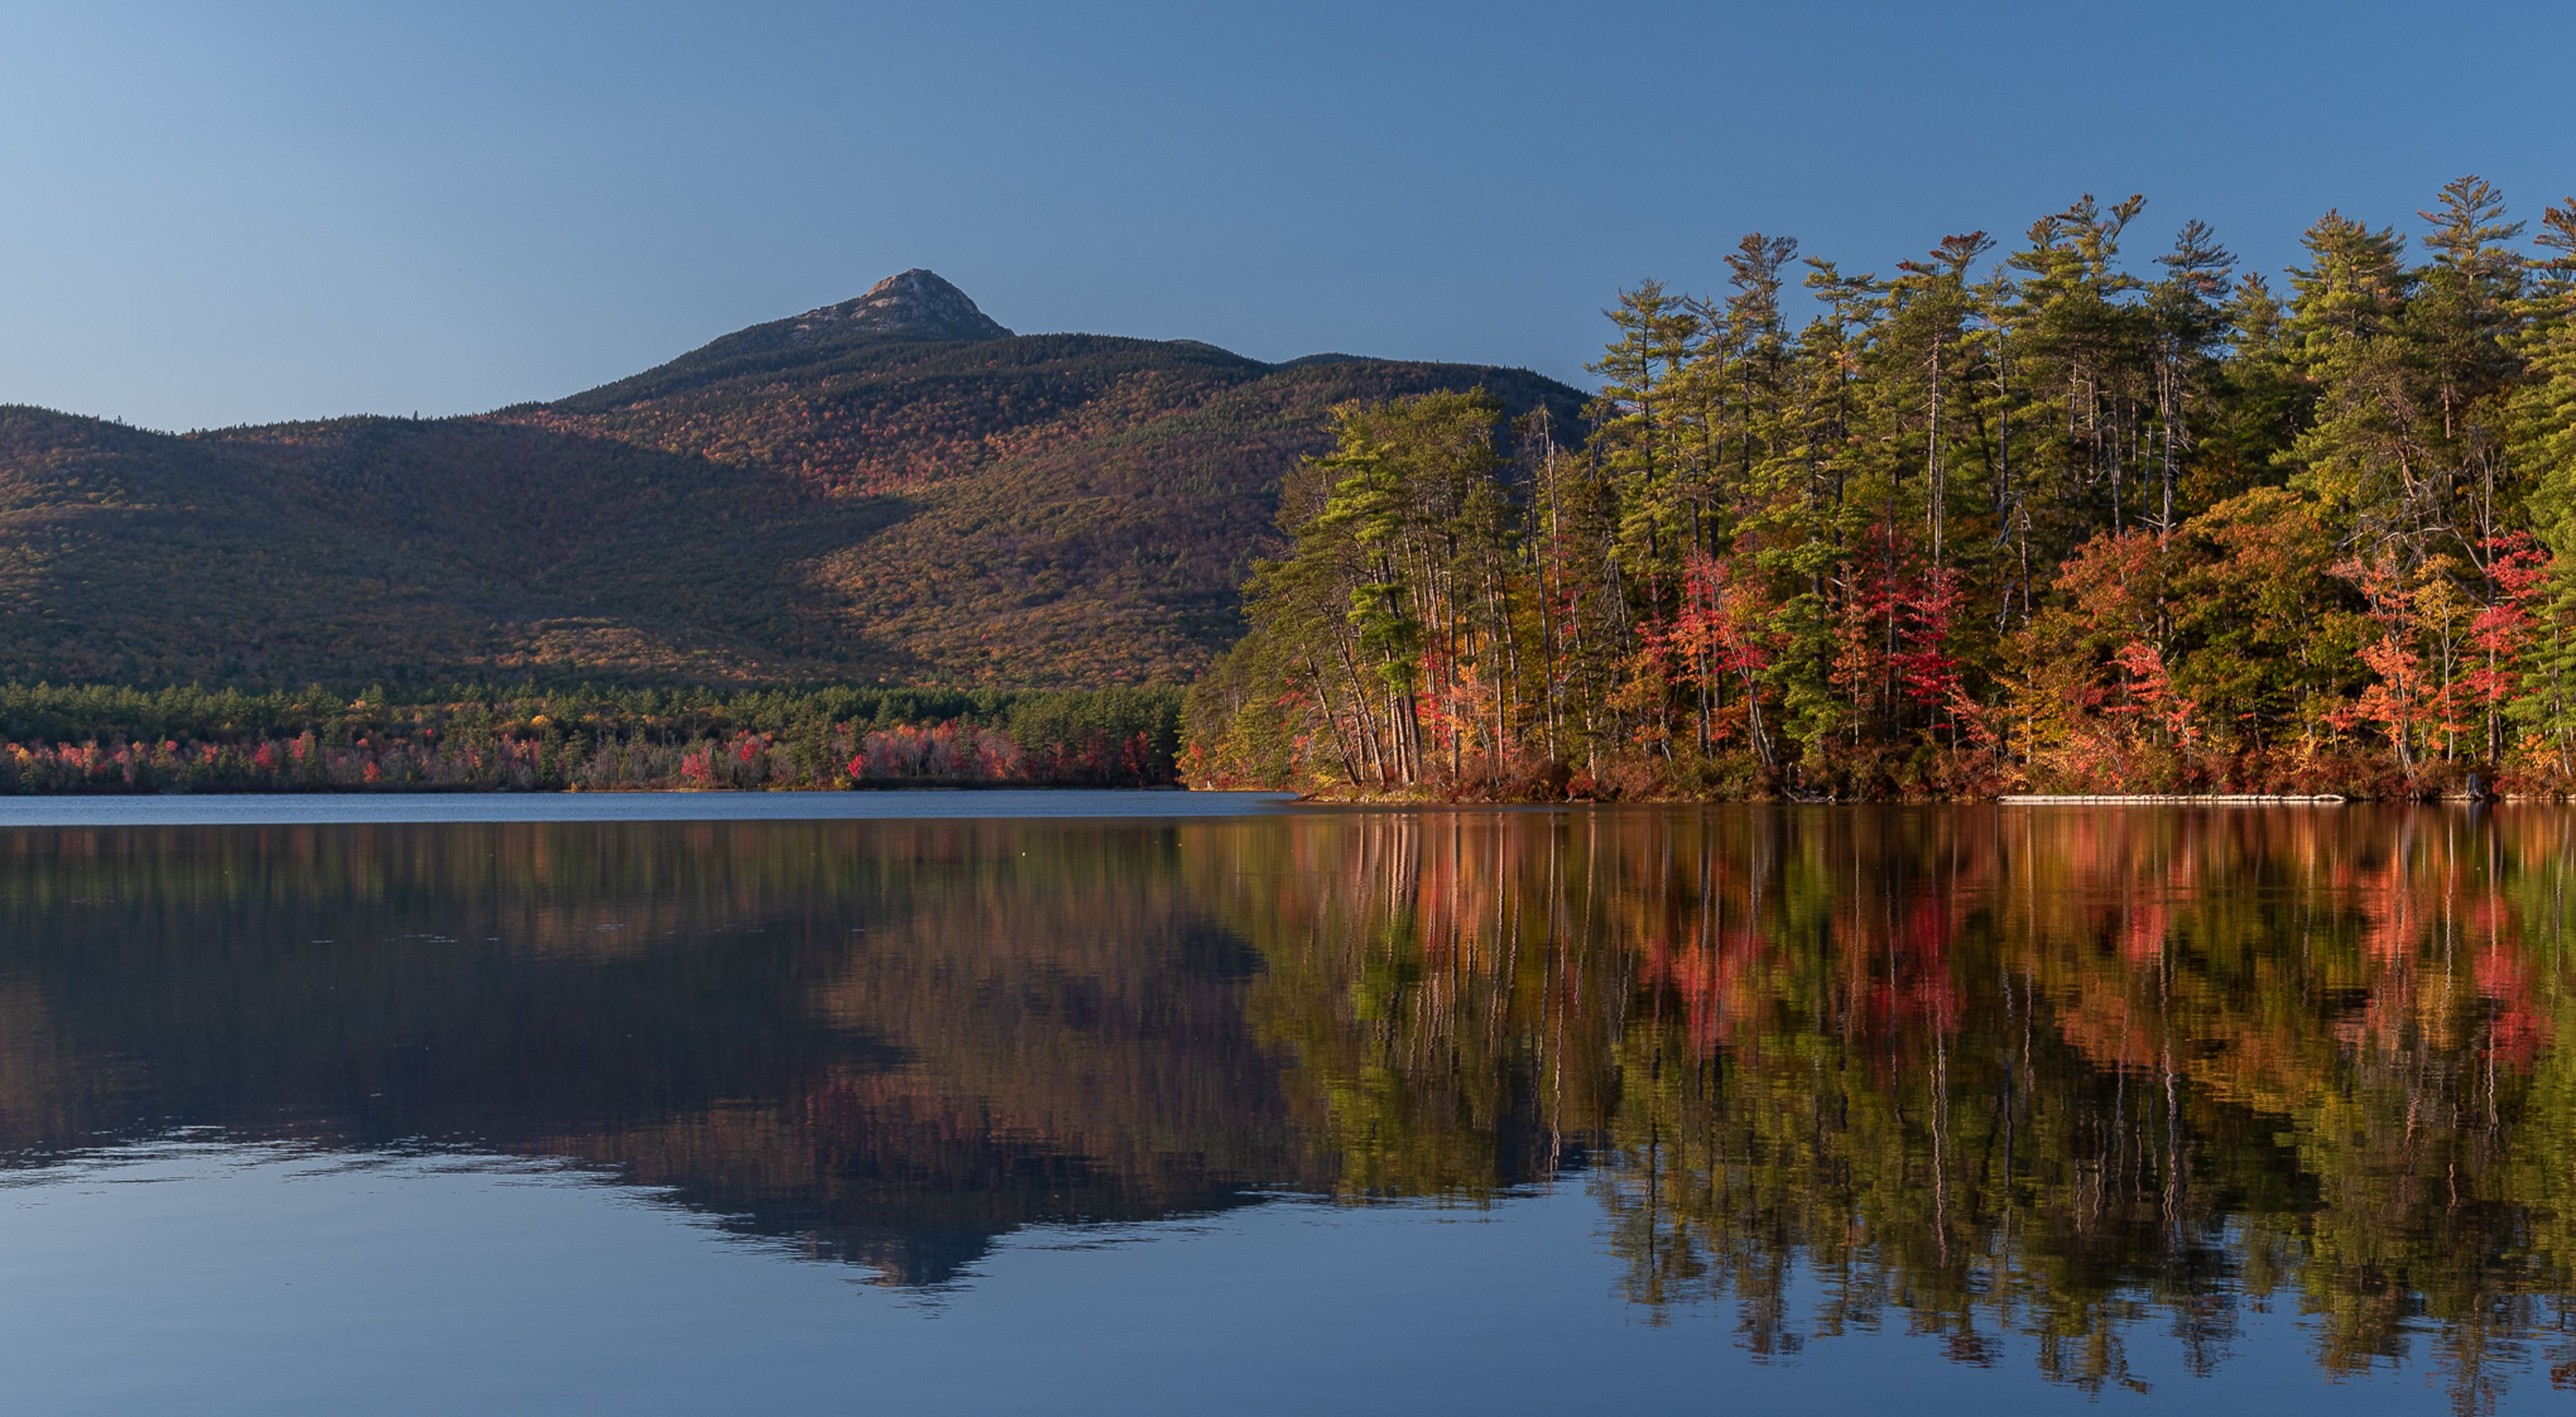 Fall colors in trees along a lake with a mountain in the background.